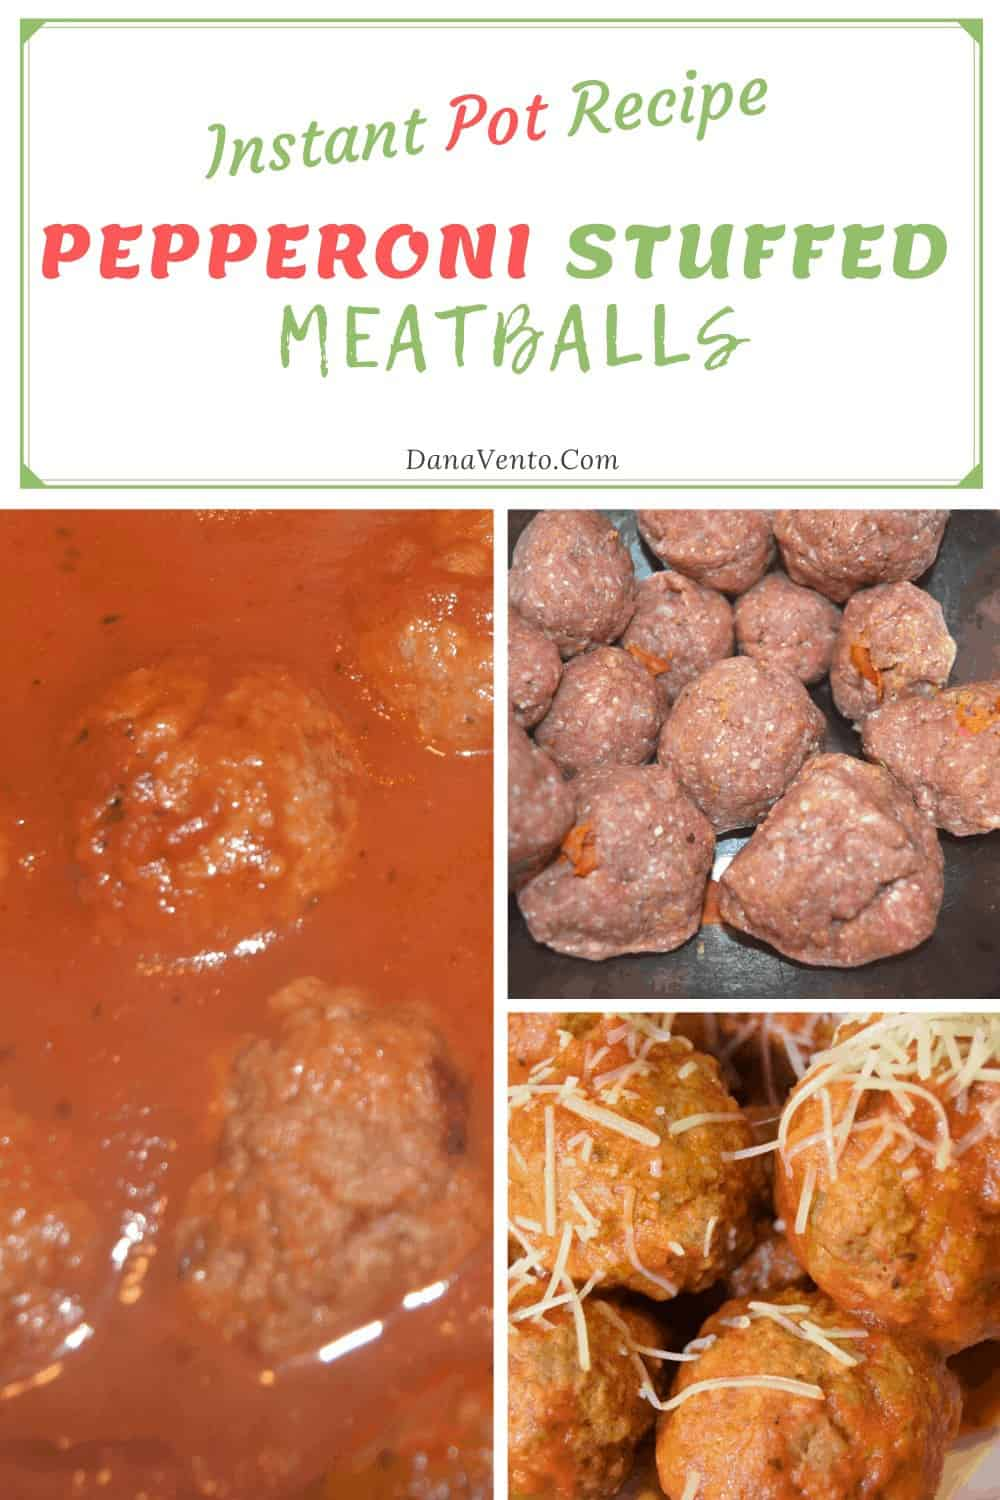 Pepperoni Stuffed Meatballs in stages